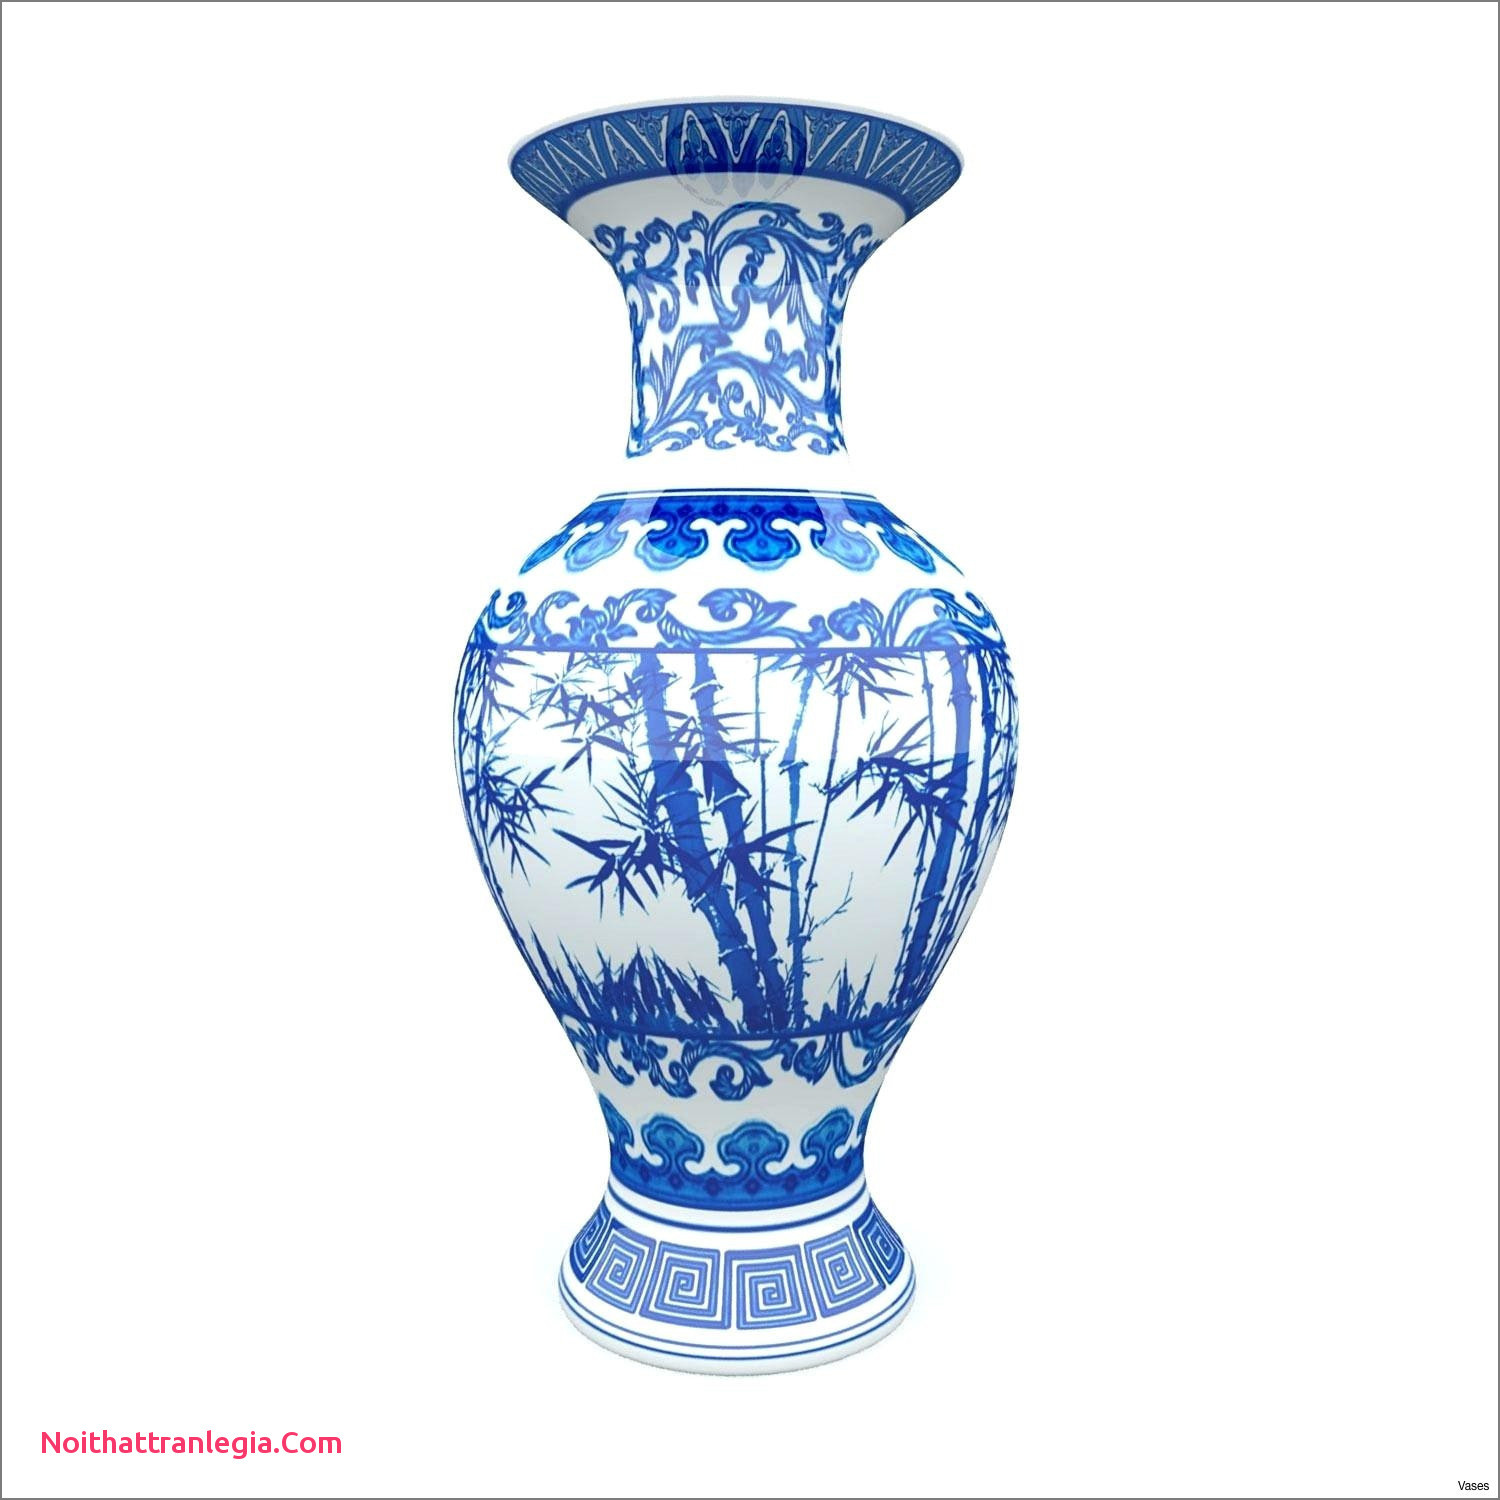 chinese cloisonne antique vases of 20 chinese antique vase noithattranlegia vases design pertaining to antique table lamp markings new chinese dynasty vase markings lamp base ceramic art his